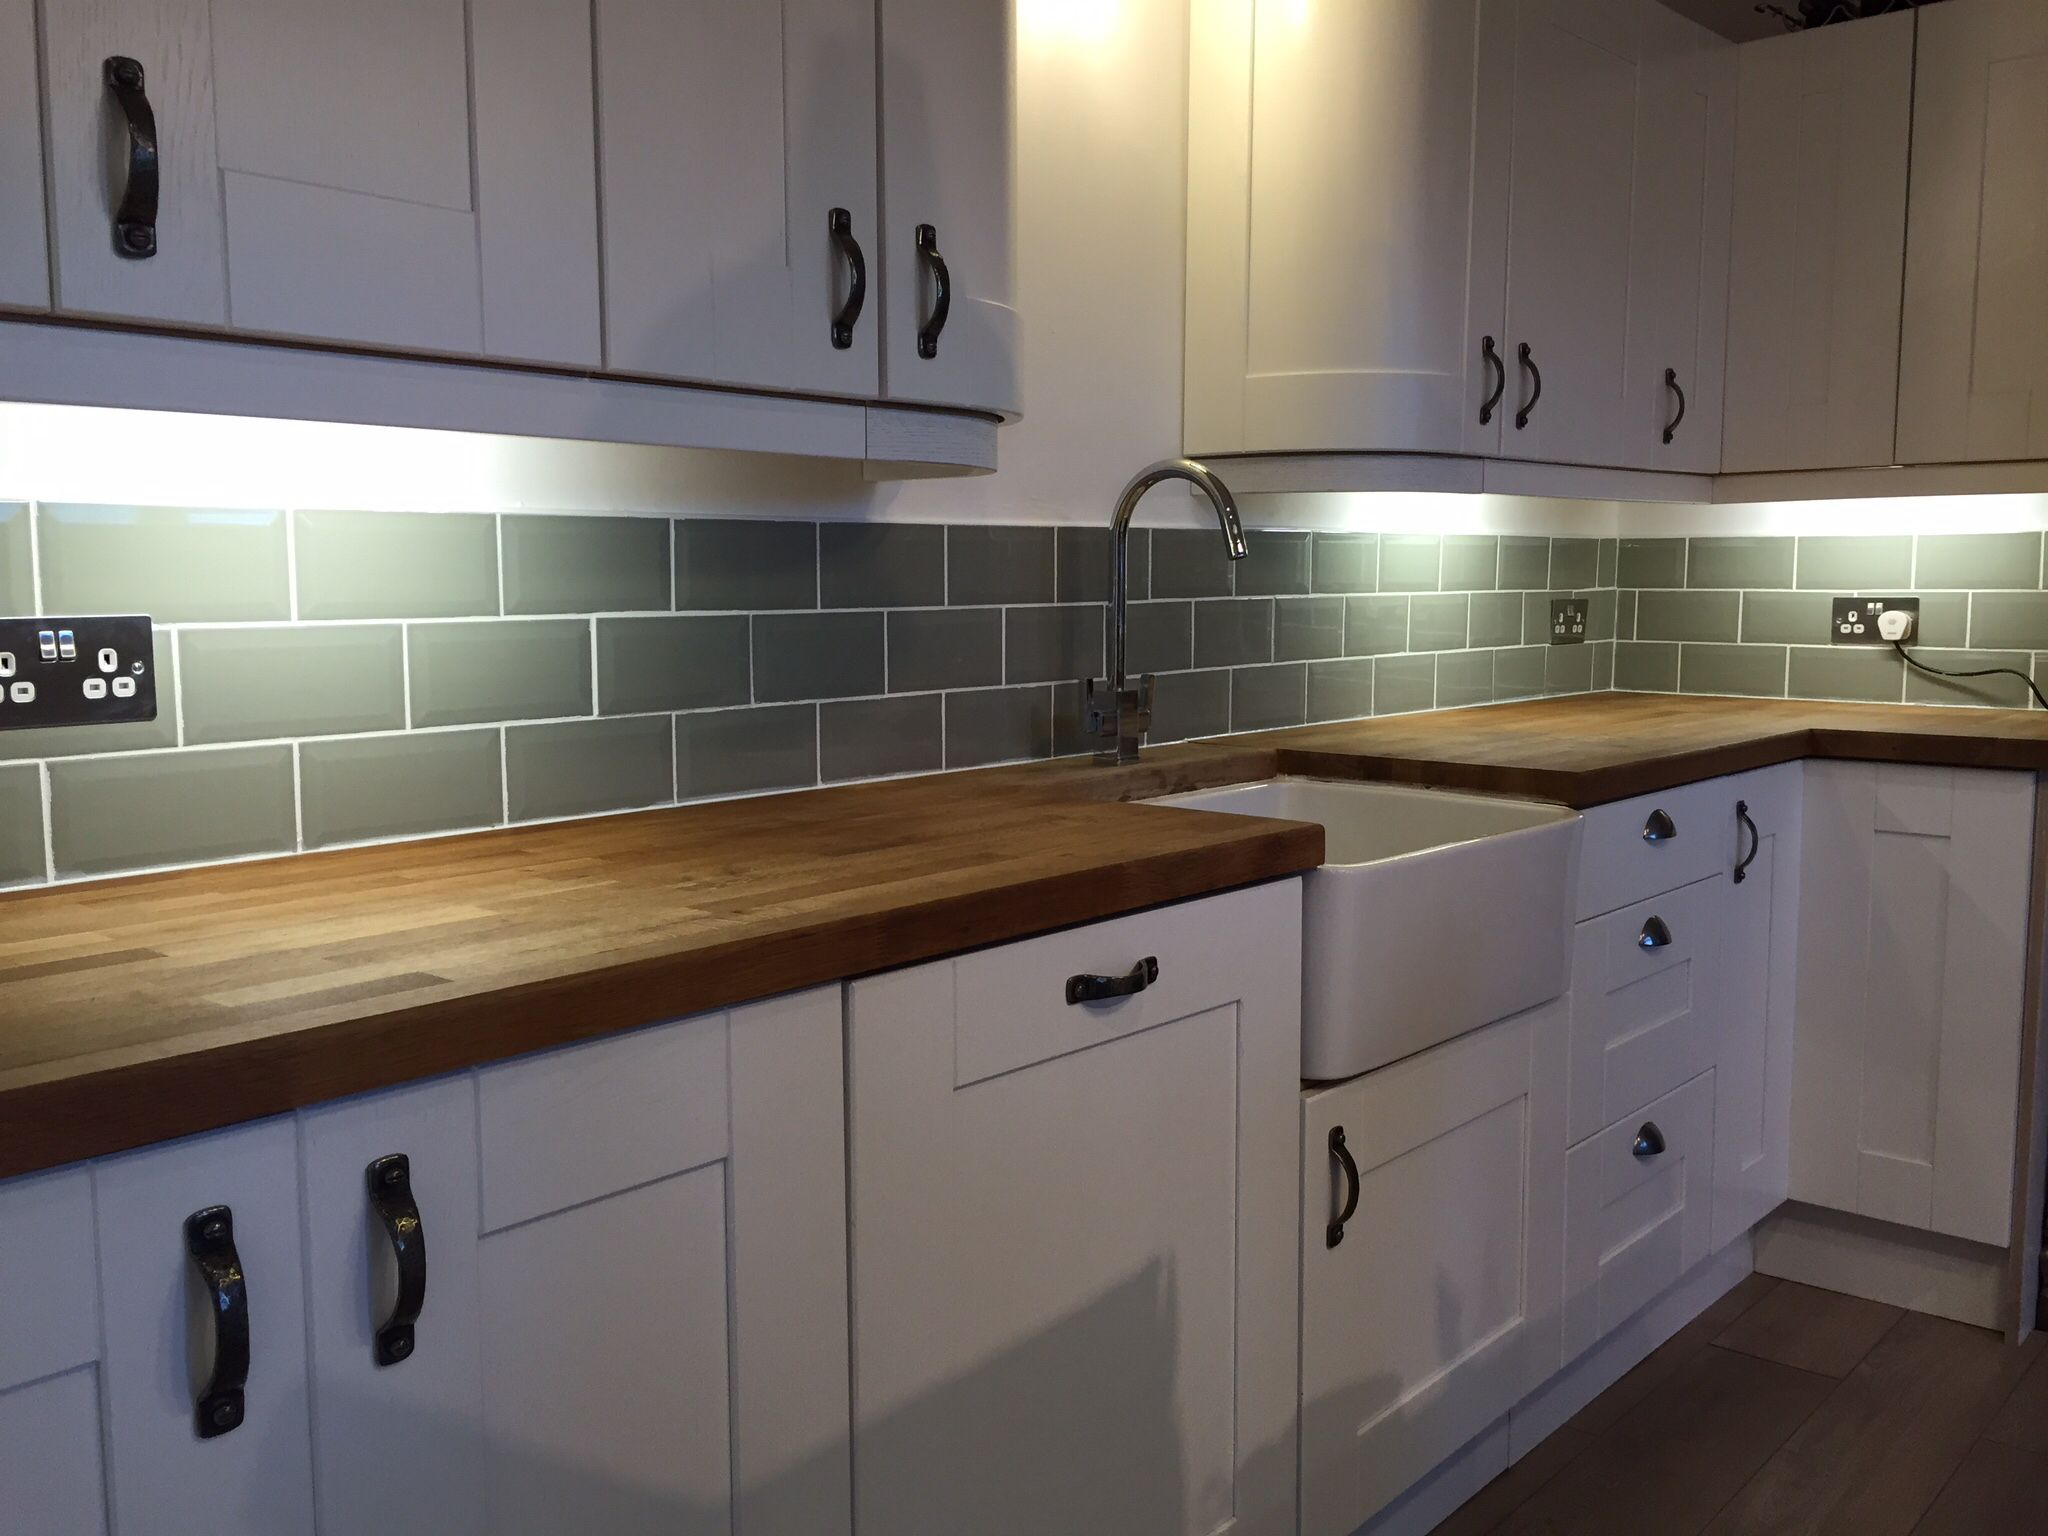 Our Kitchen Fitted Ourselves Tiled Ourselves Sage Metro Tiles Oak Worktops Belfast Sink